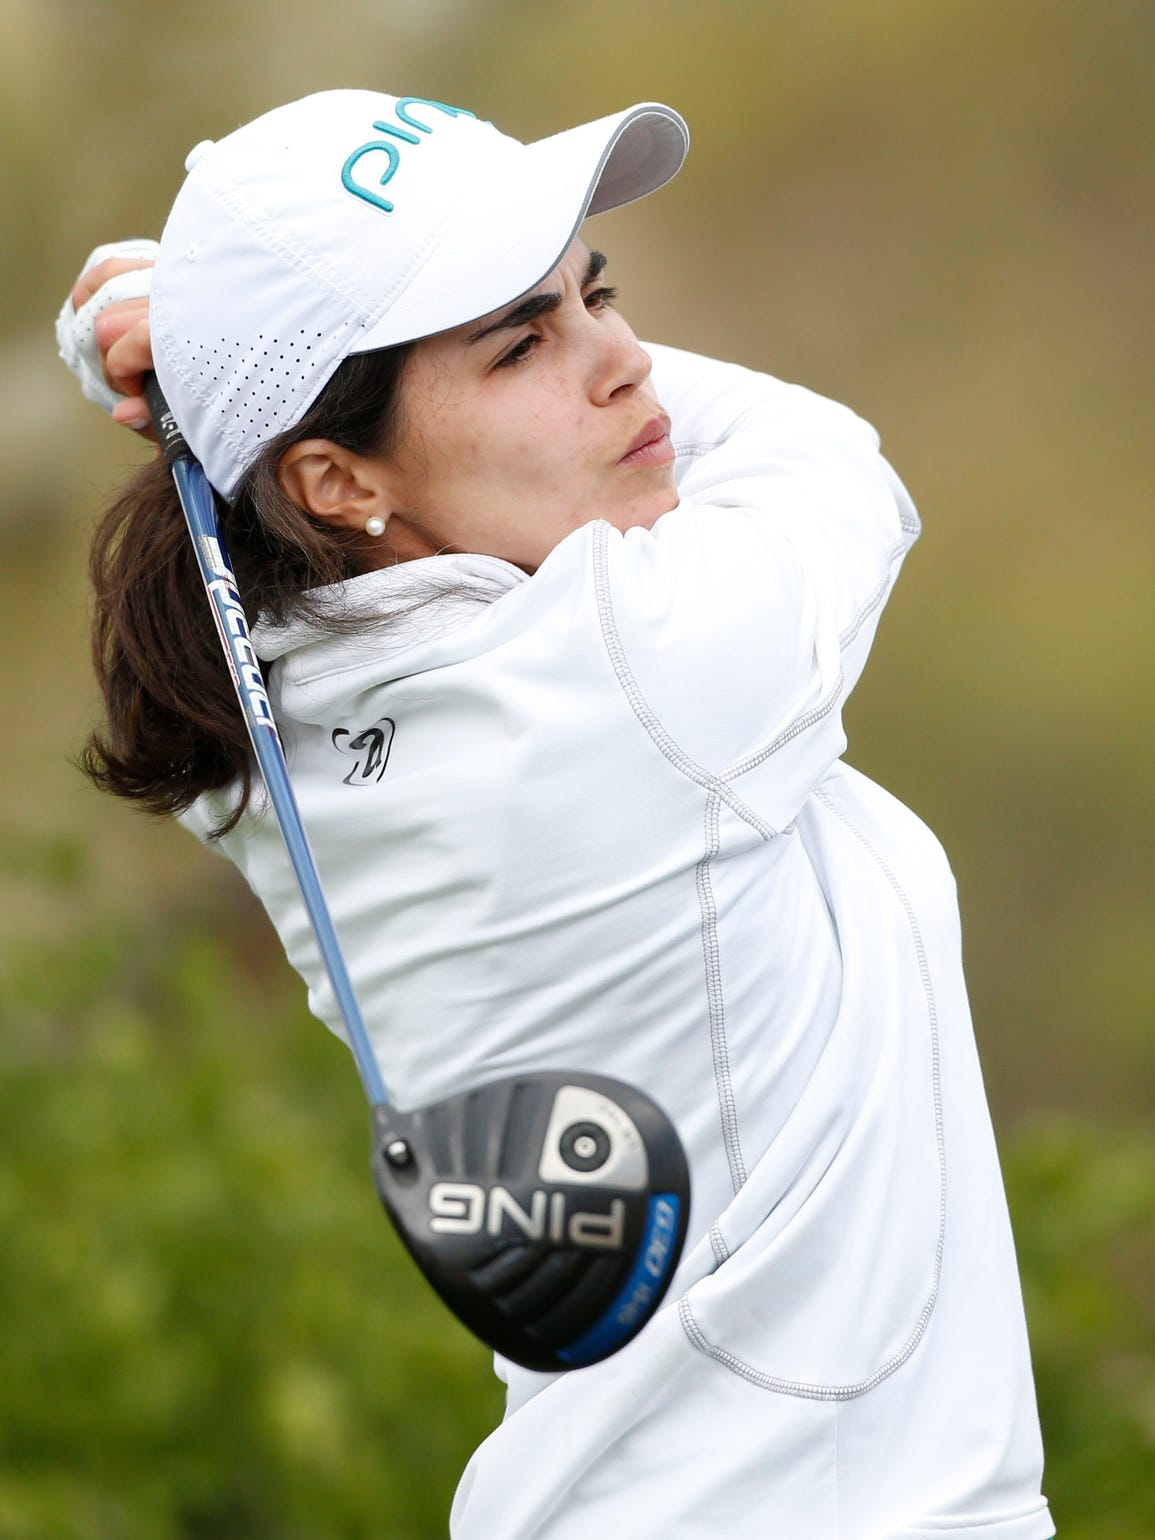 From 2015, Maria Hernandez tees off on the 11th hole